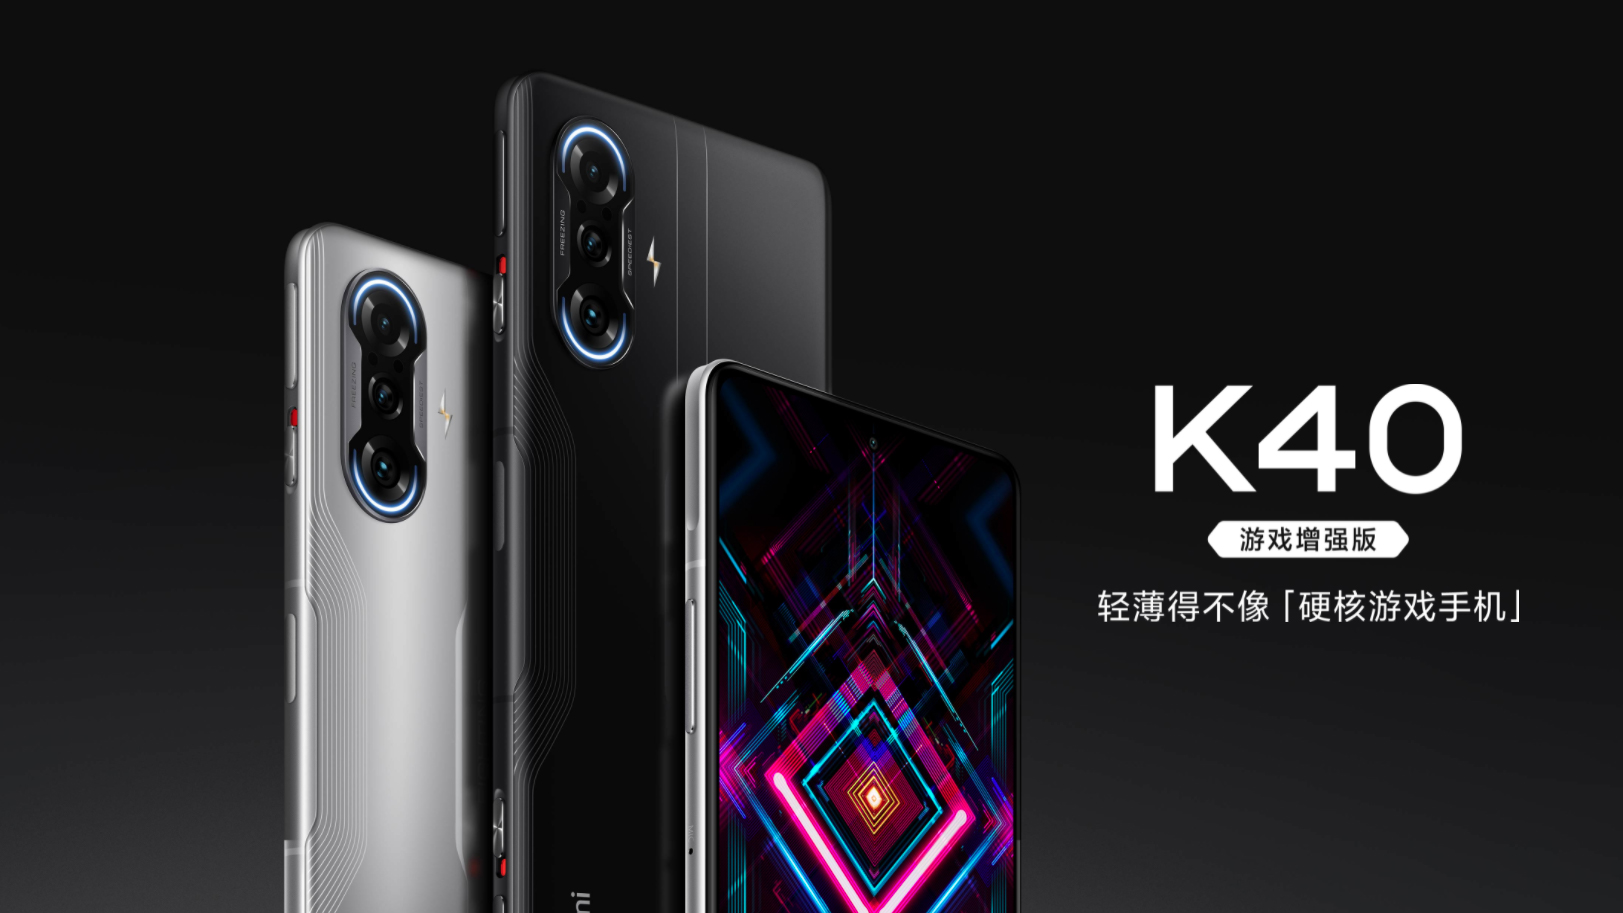 Redmi K40 Gaming phone